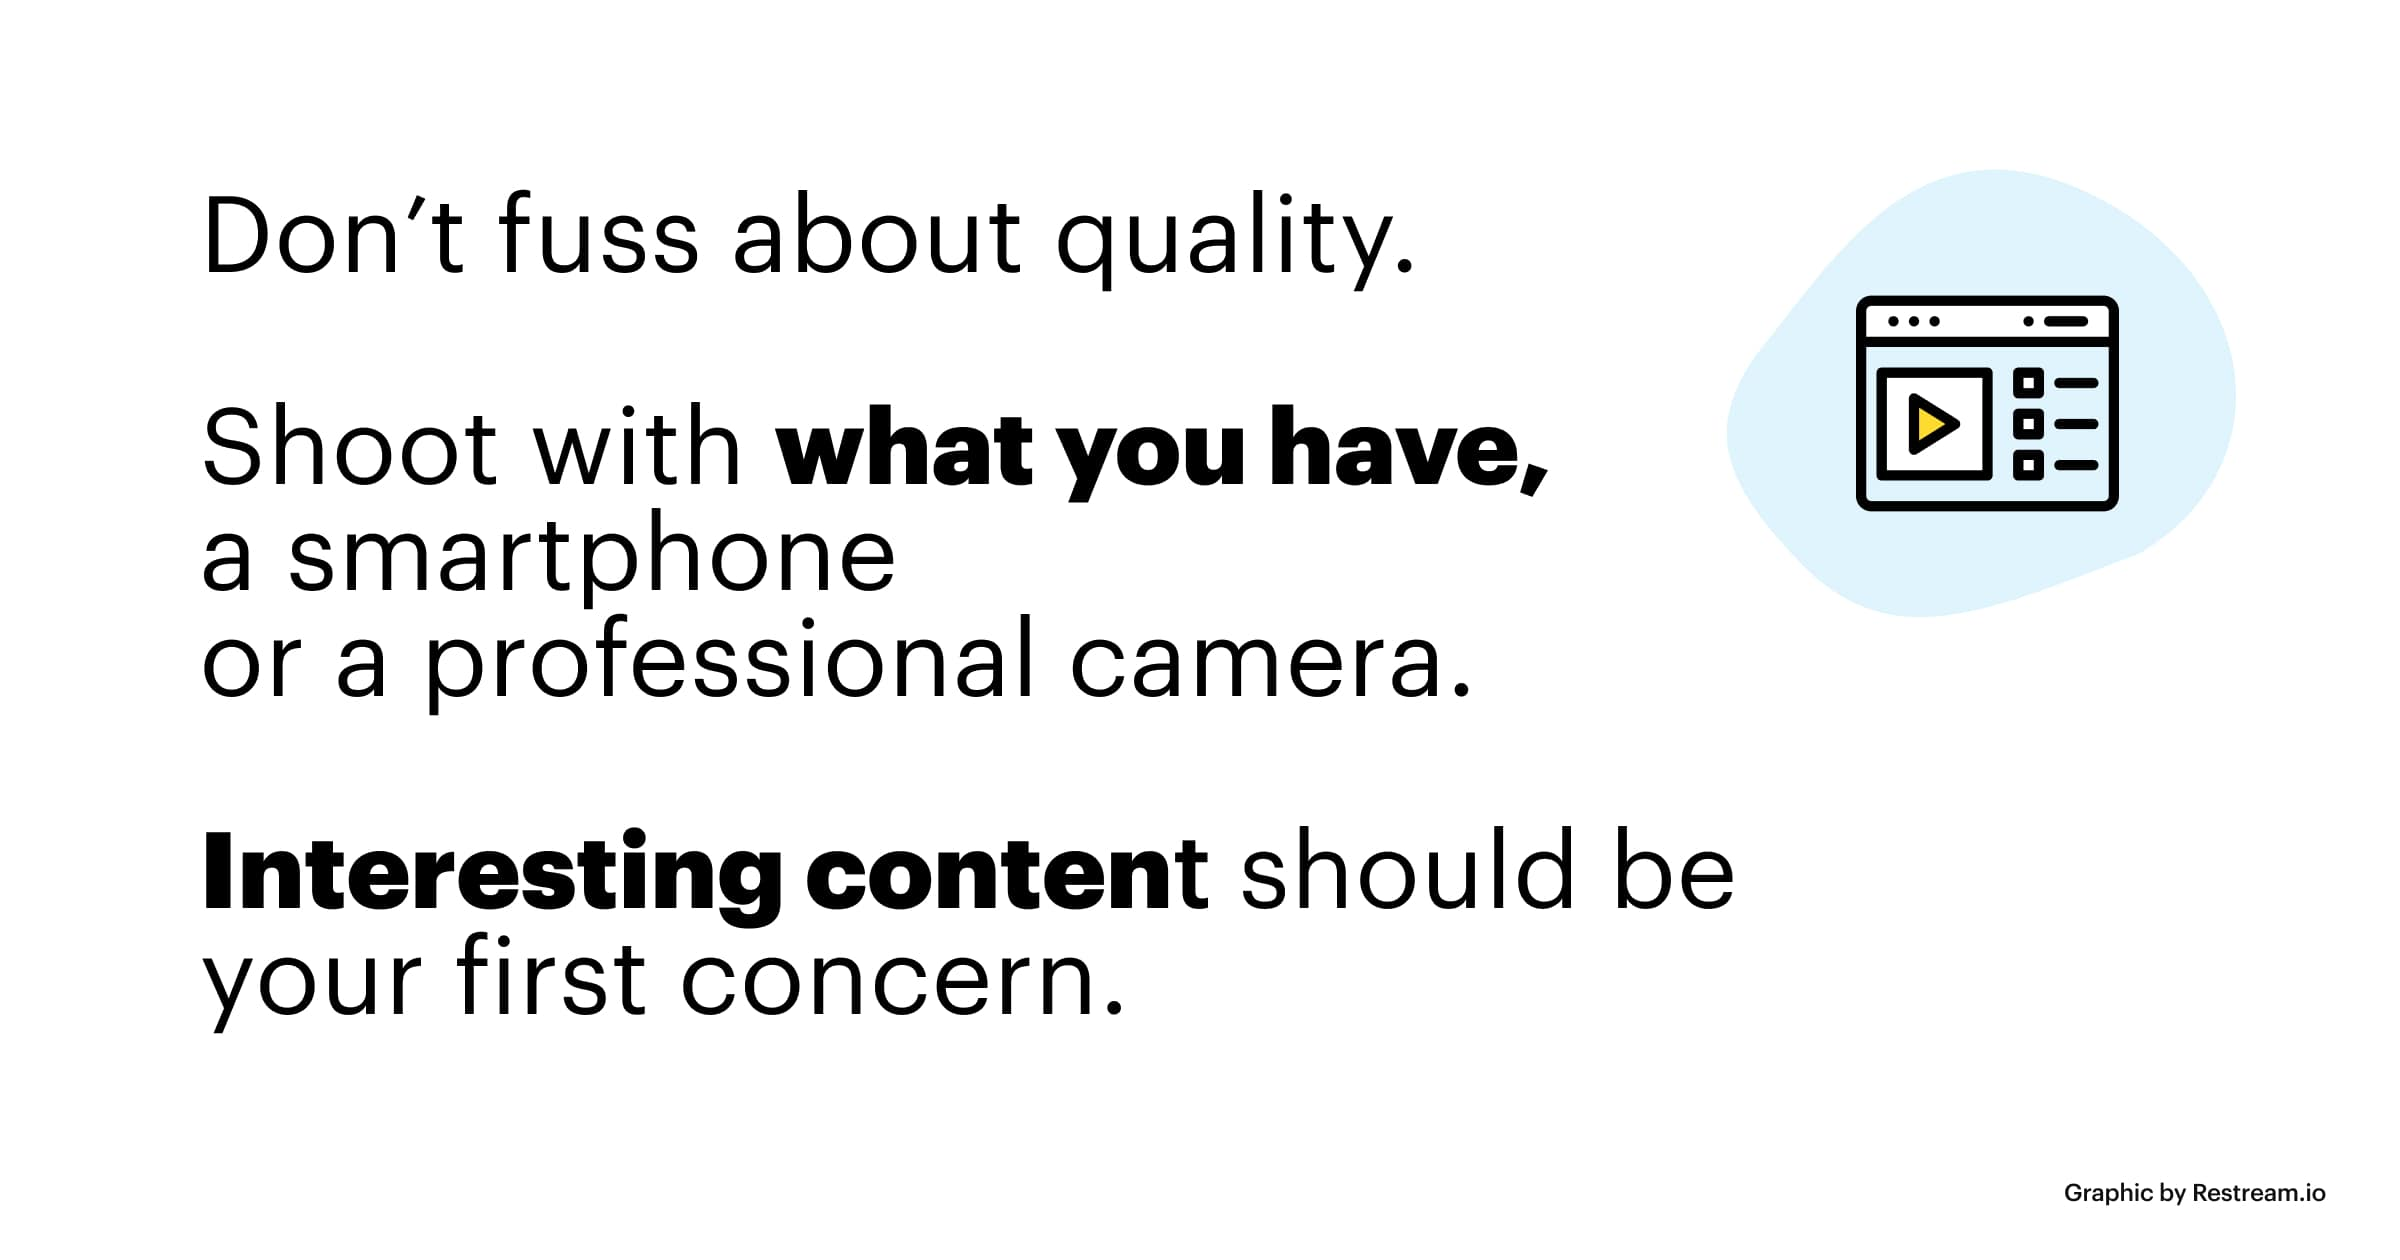 Don't fuss about quality - interesting content should be your first concern.